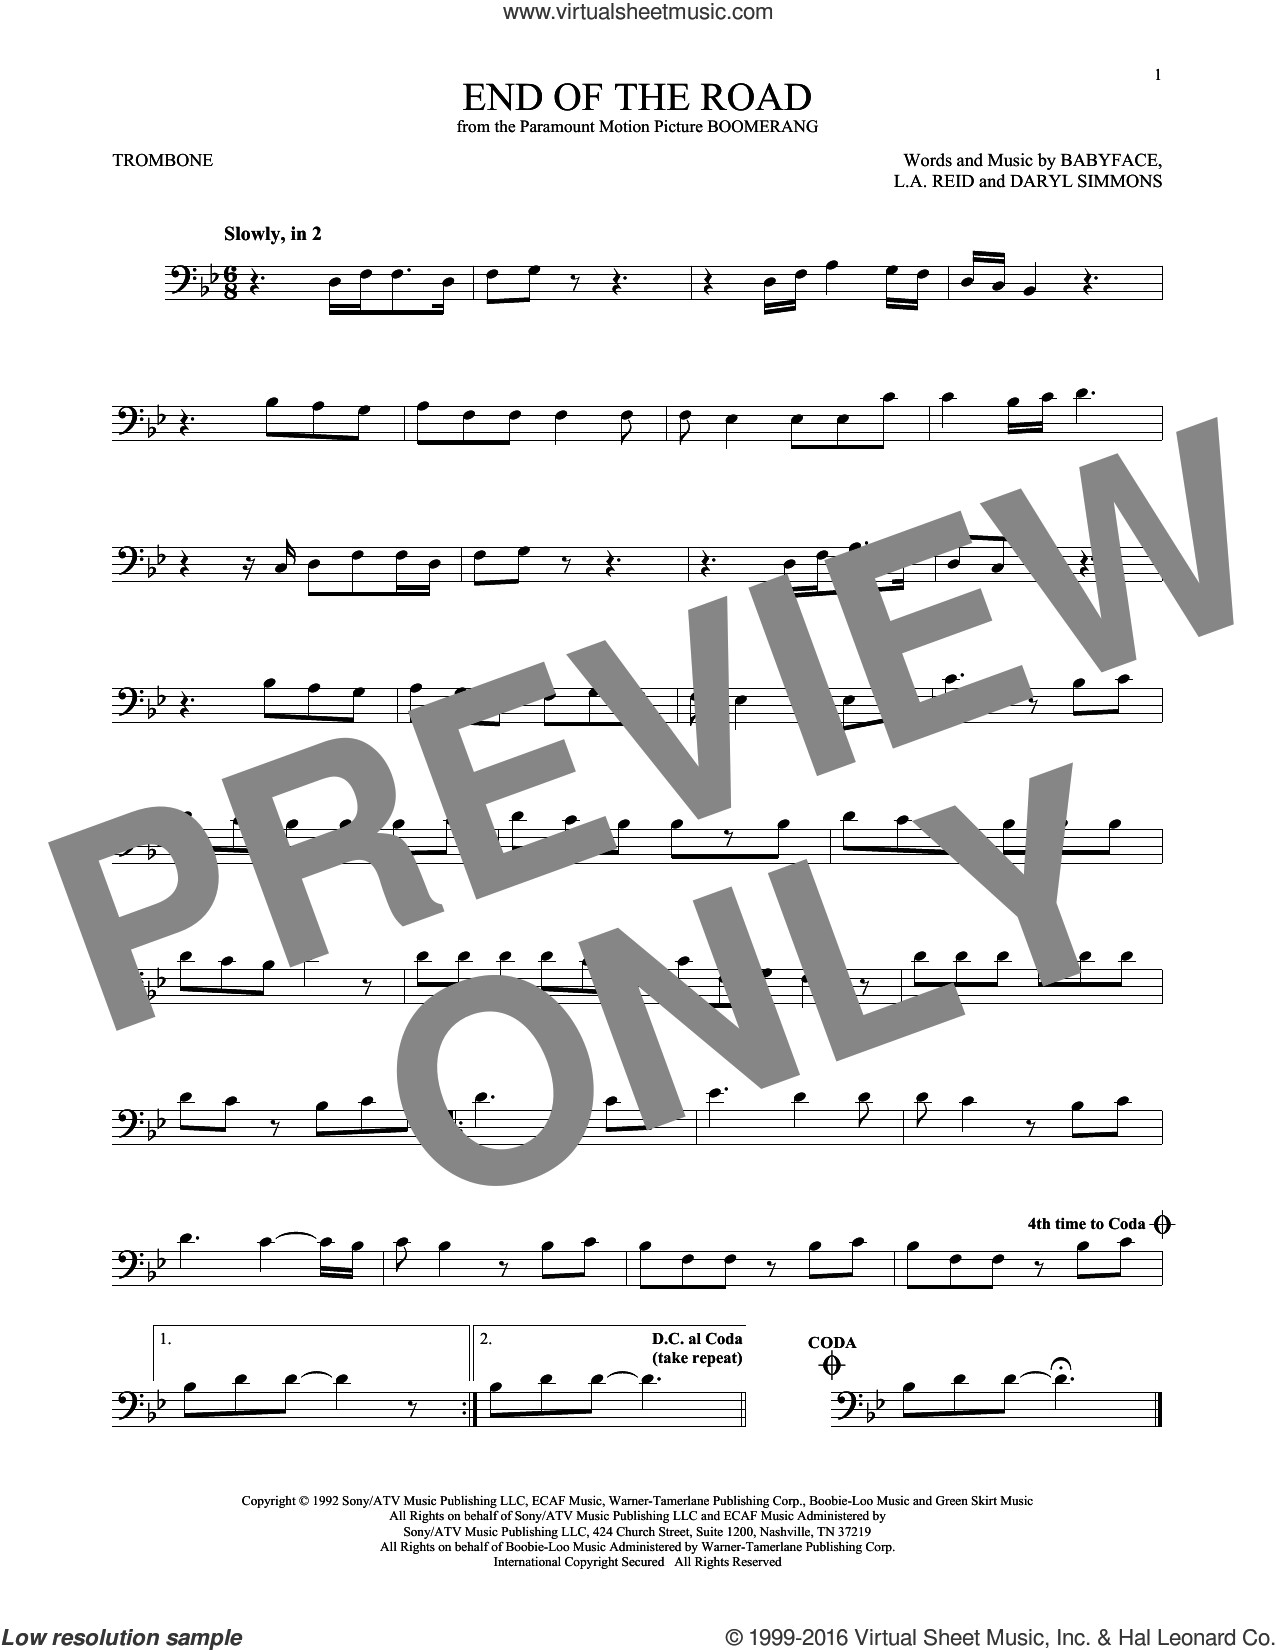 End Of The Road sheet music for trombone solo by Boyz II Men, Babyface, DARYL SIMMONS and L.A. Reid, intermediate